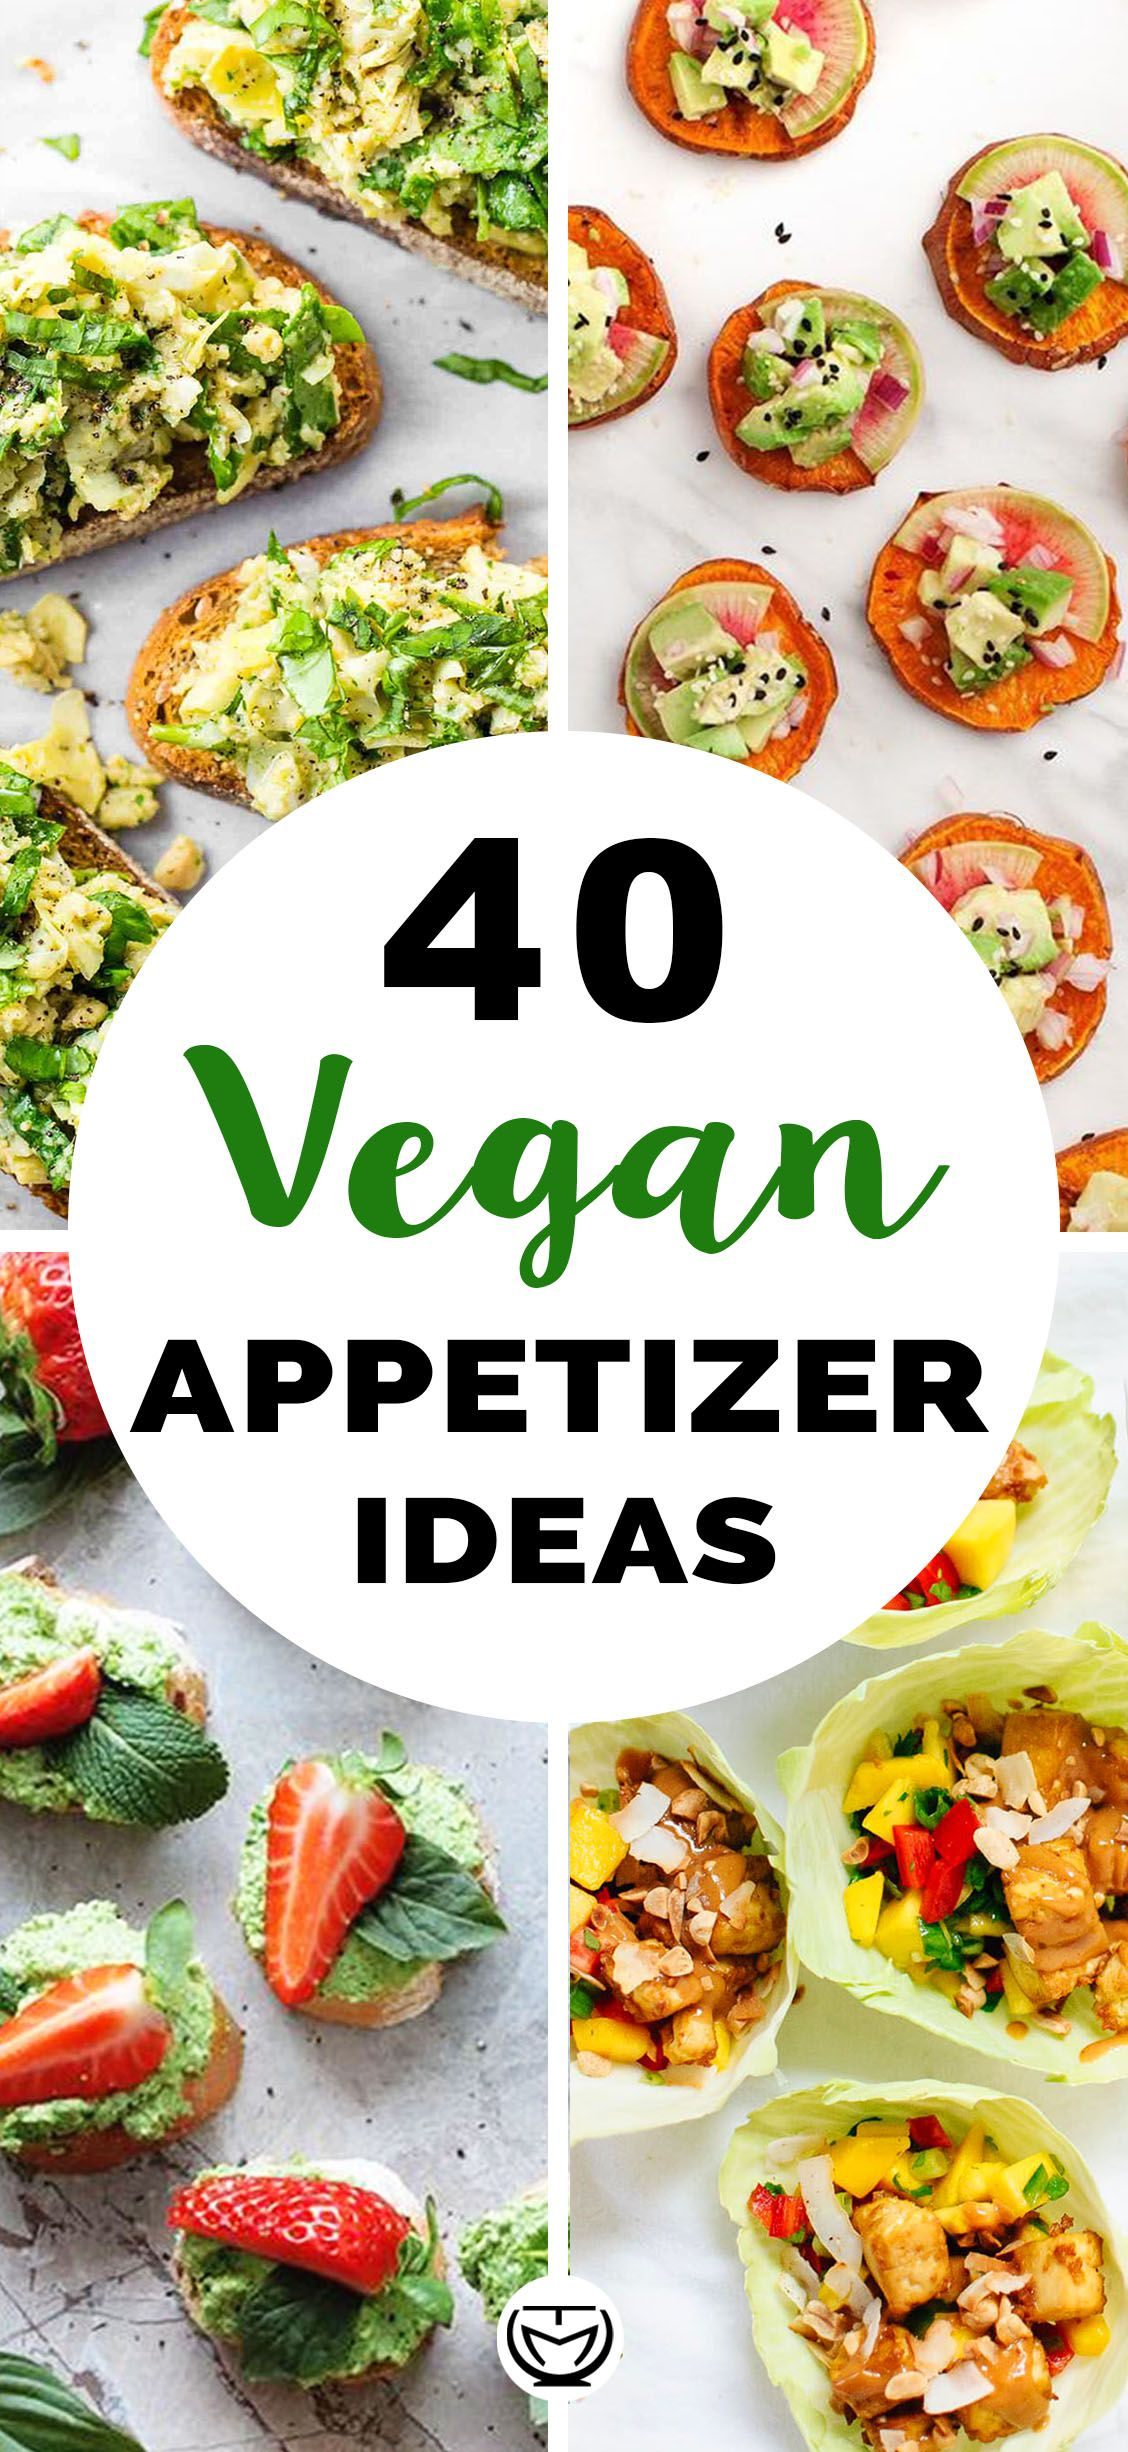 40 Delicious And Easy Vegan Appetizers The Clever Vegan